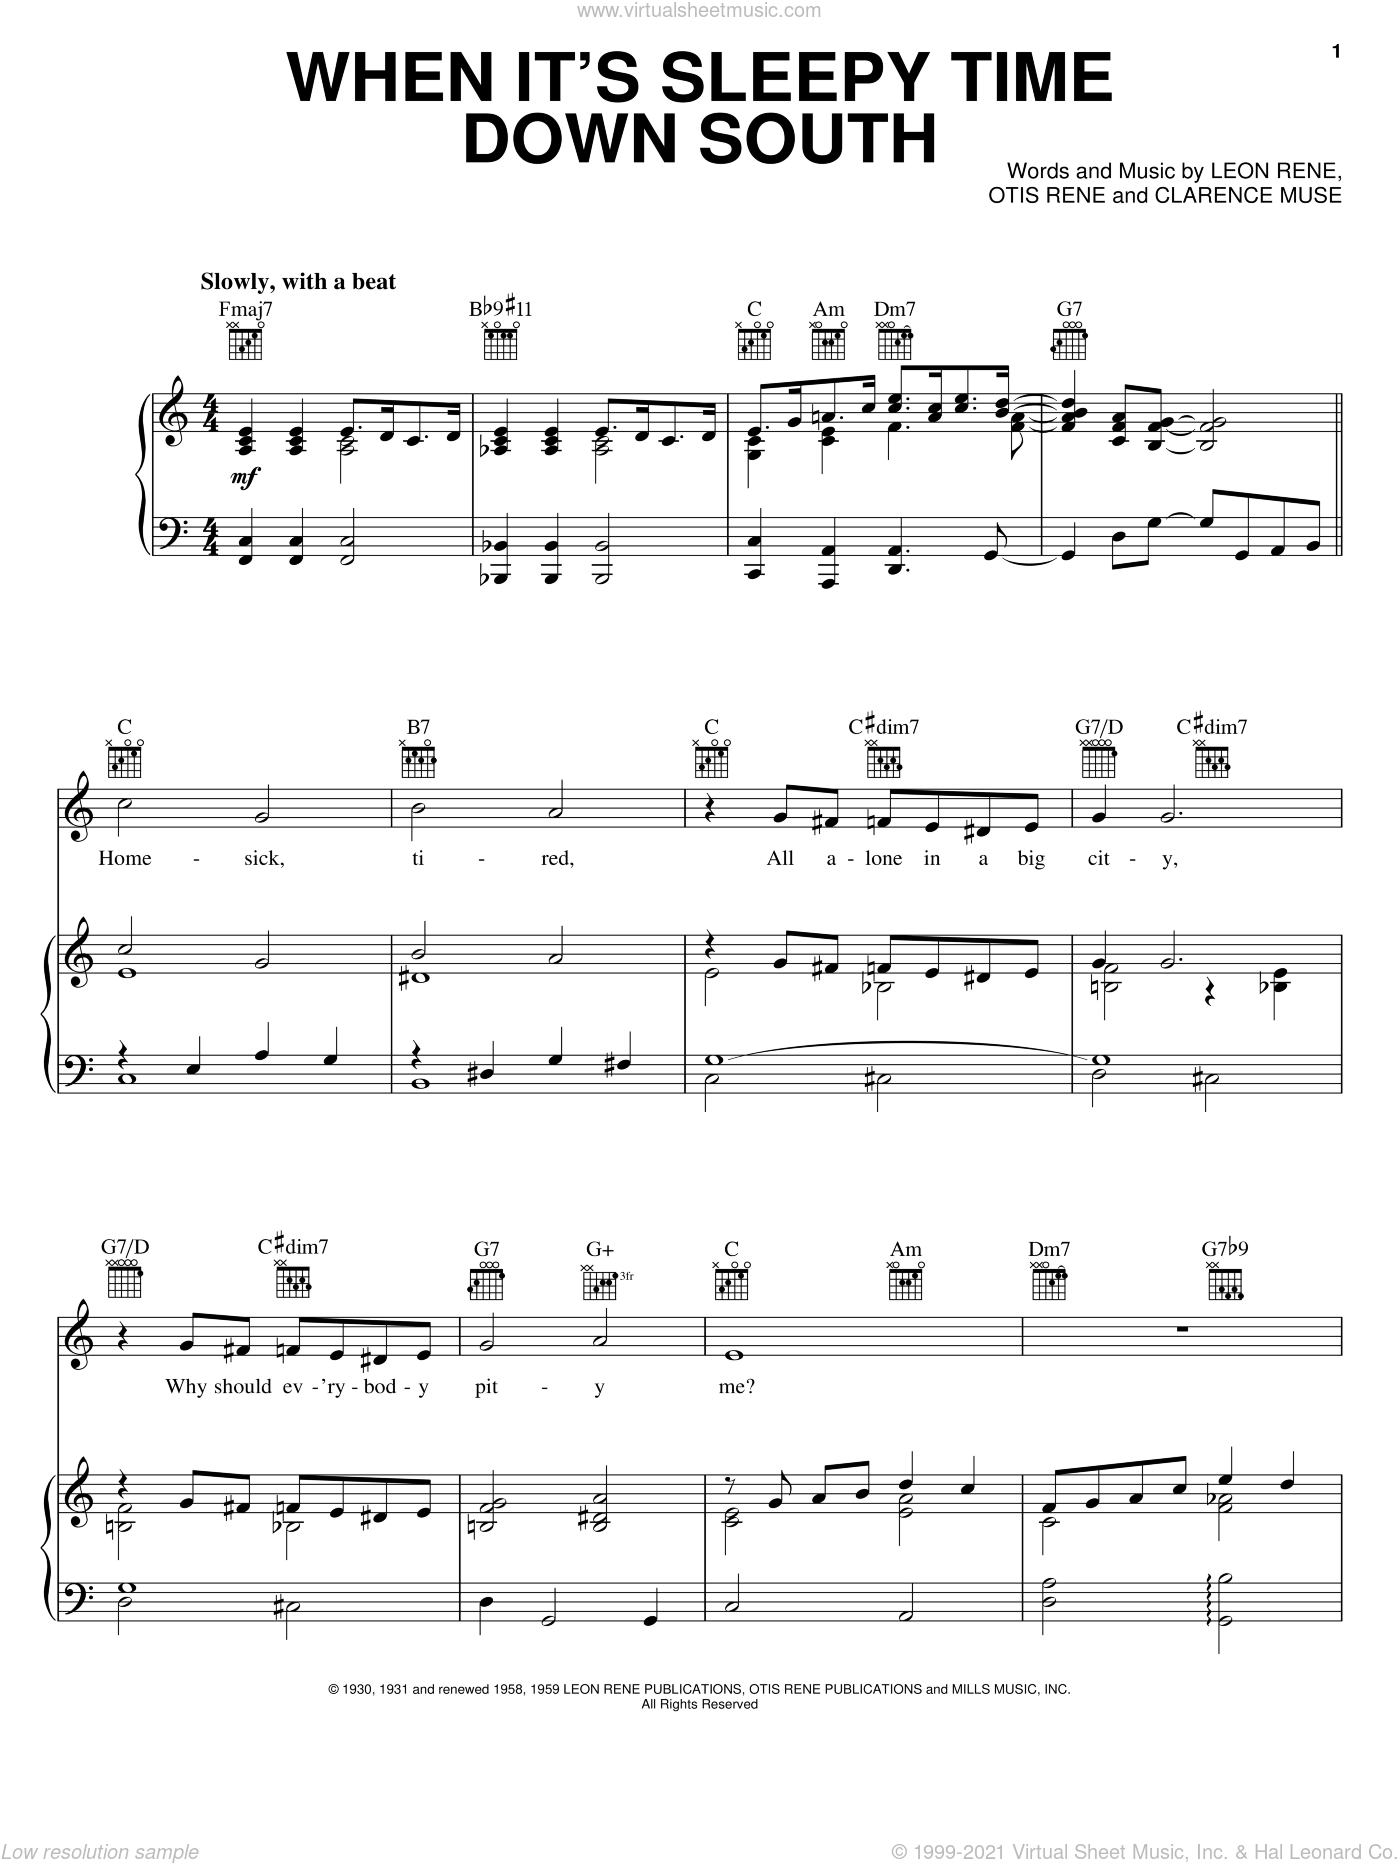 When It's Sleepy Time Down South sheet music for voice, piano or guitar by Otis Rene